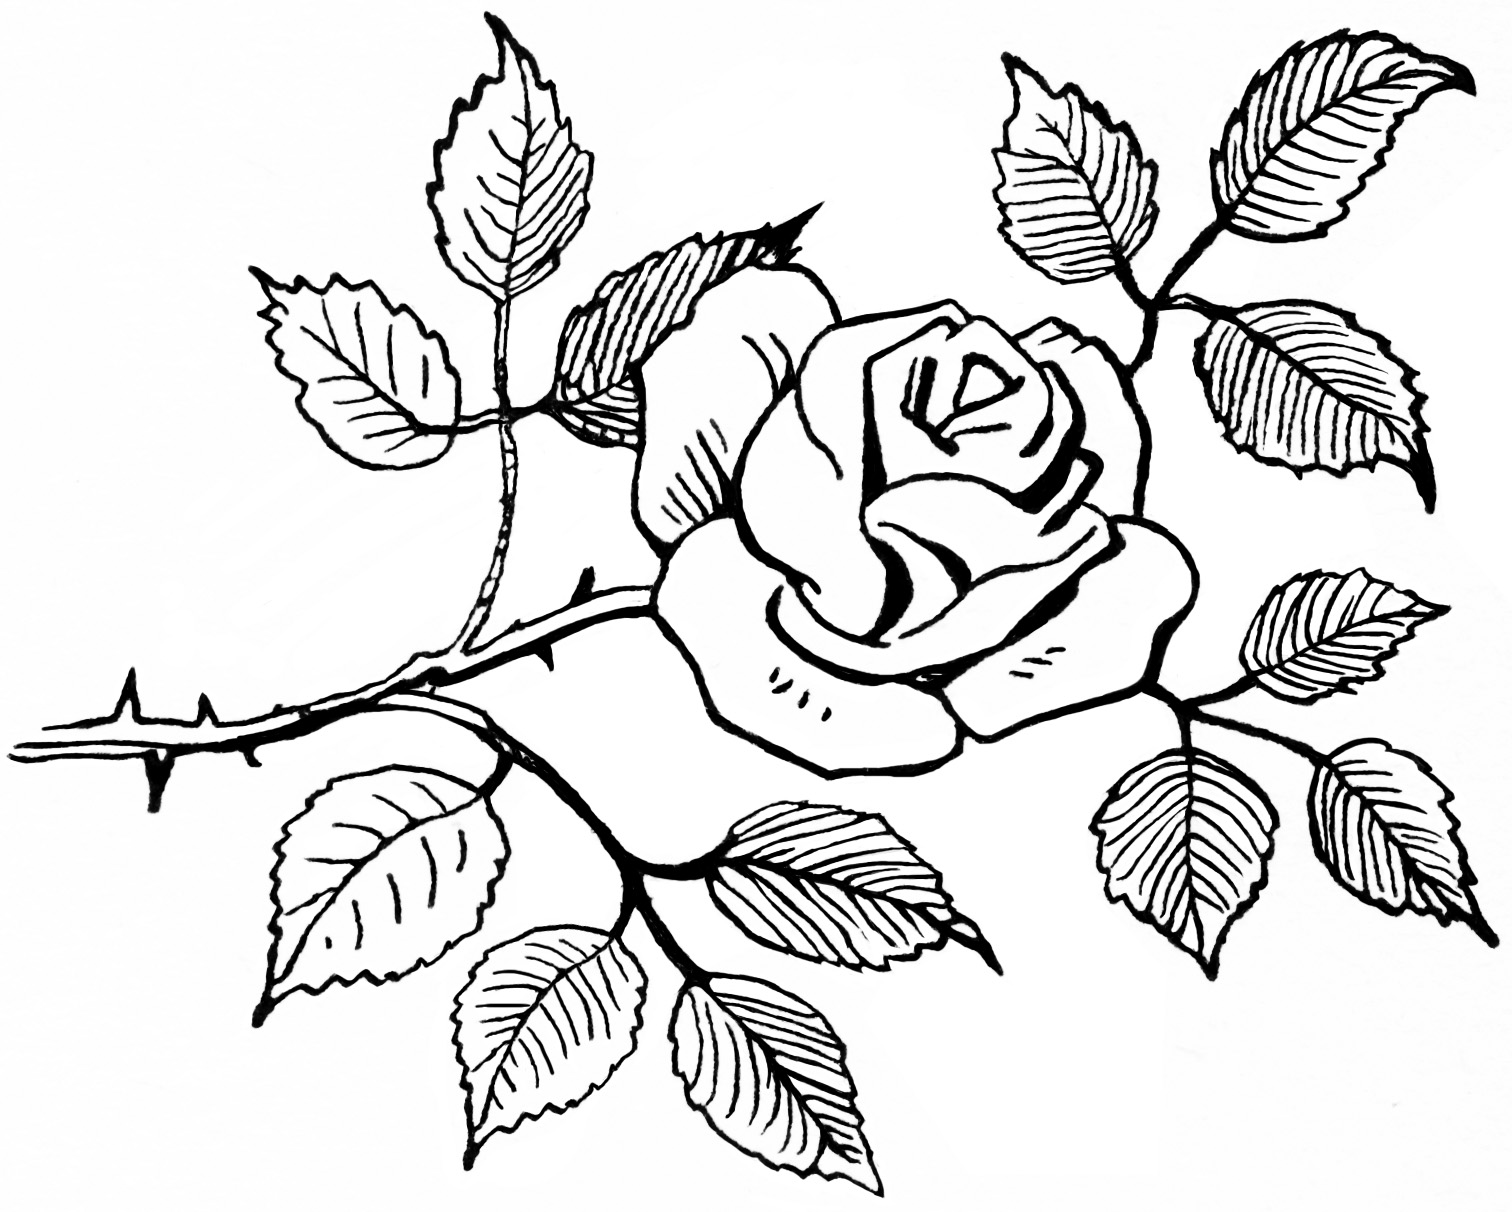 Rose flowers black and white clipart vector black and white download Free Rose Drawings Black And White, Download Free Clip Art ... vector black and white download